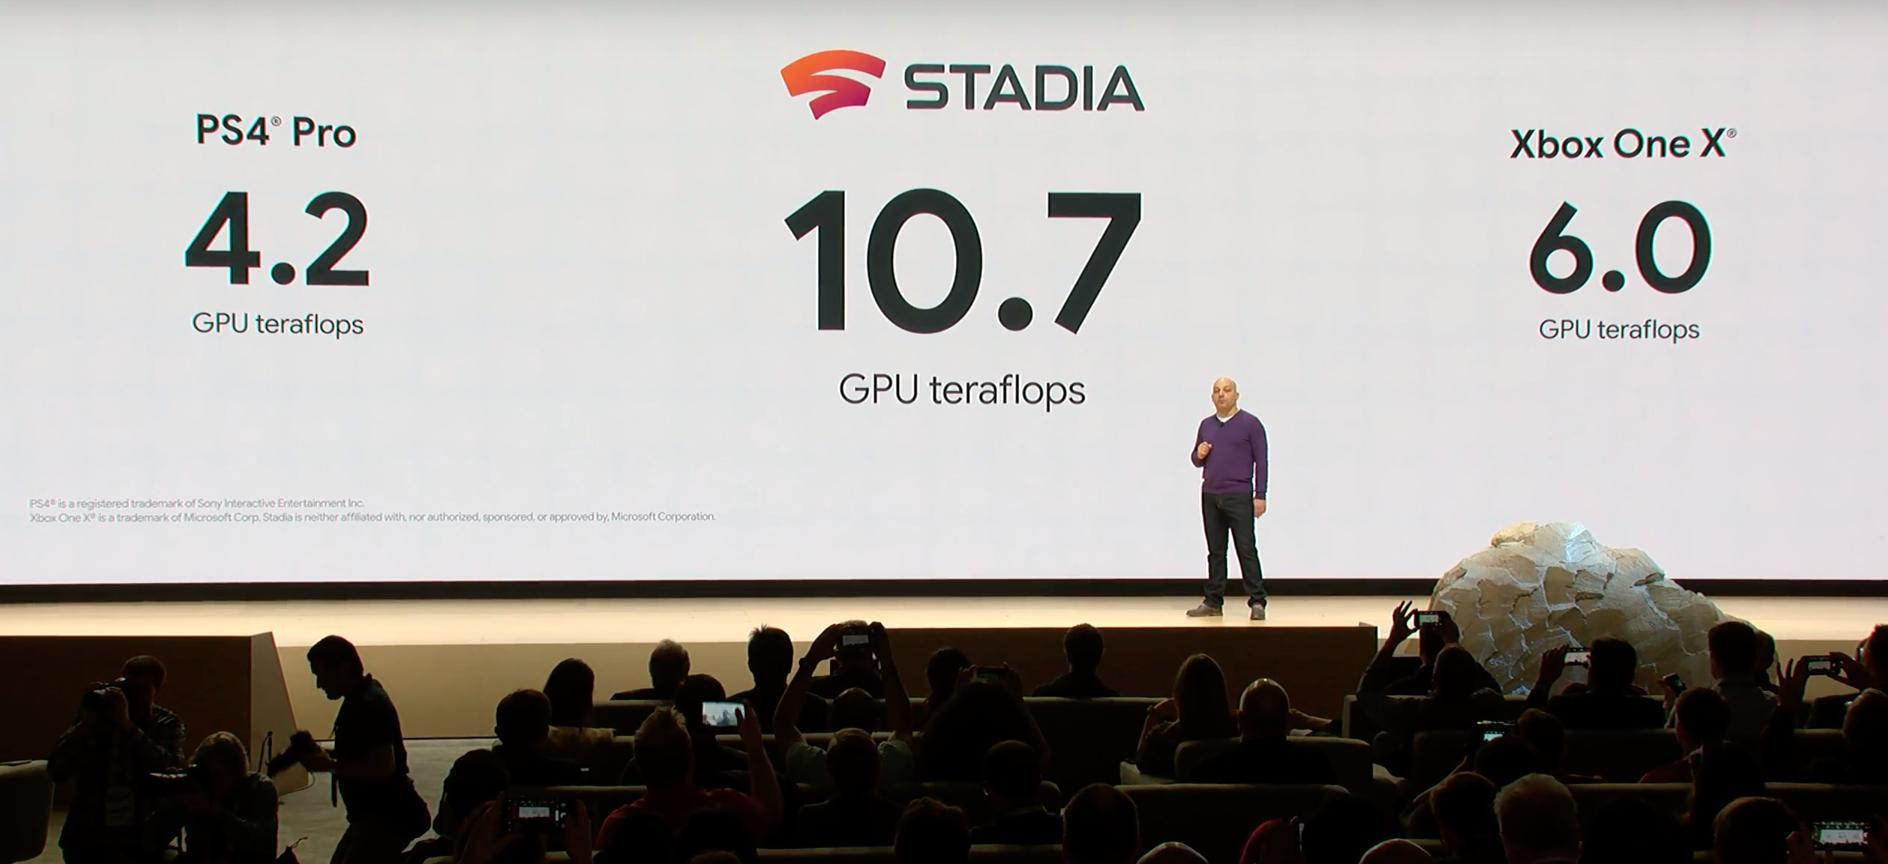 stadia playstation xbox